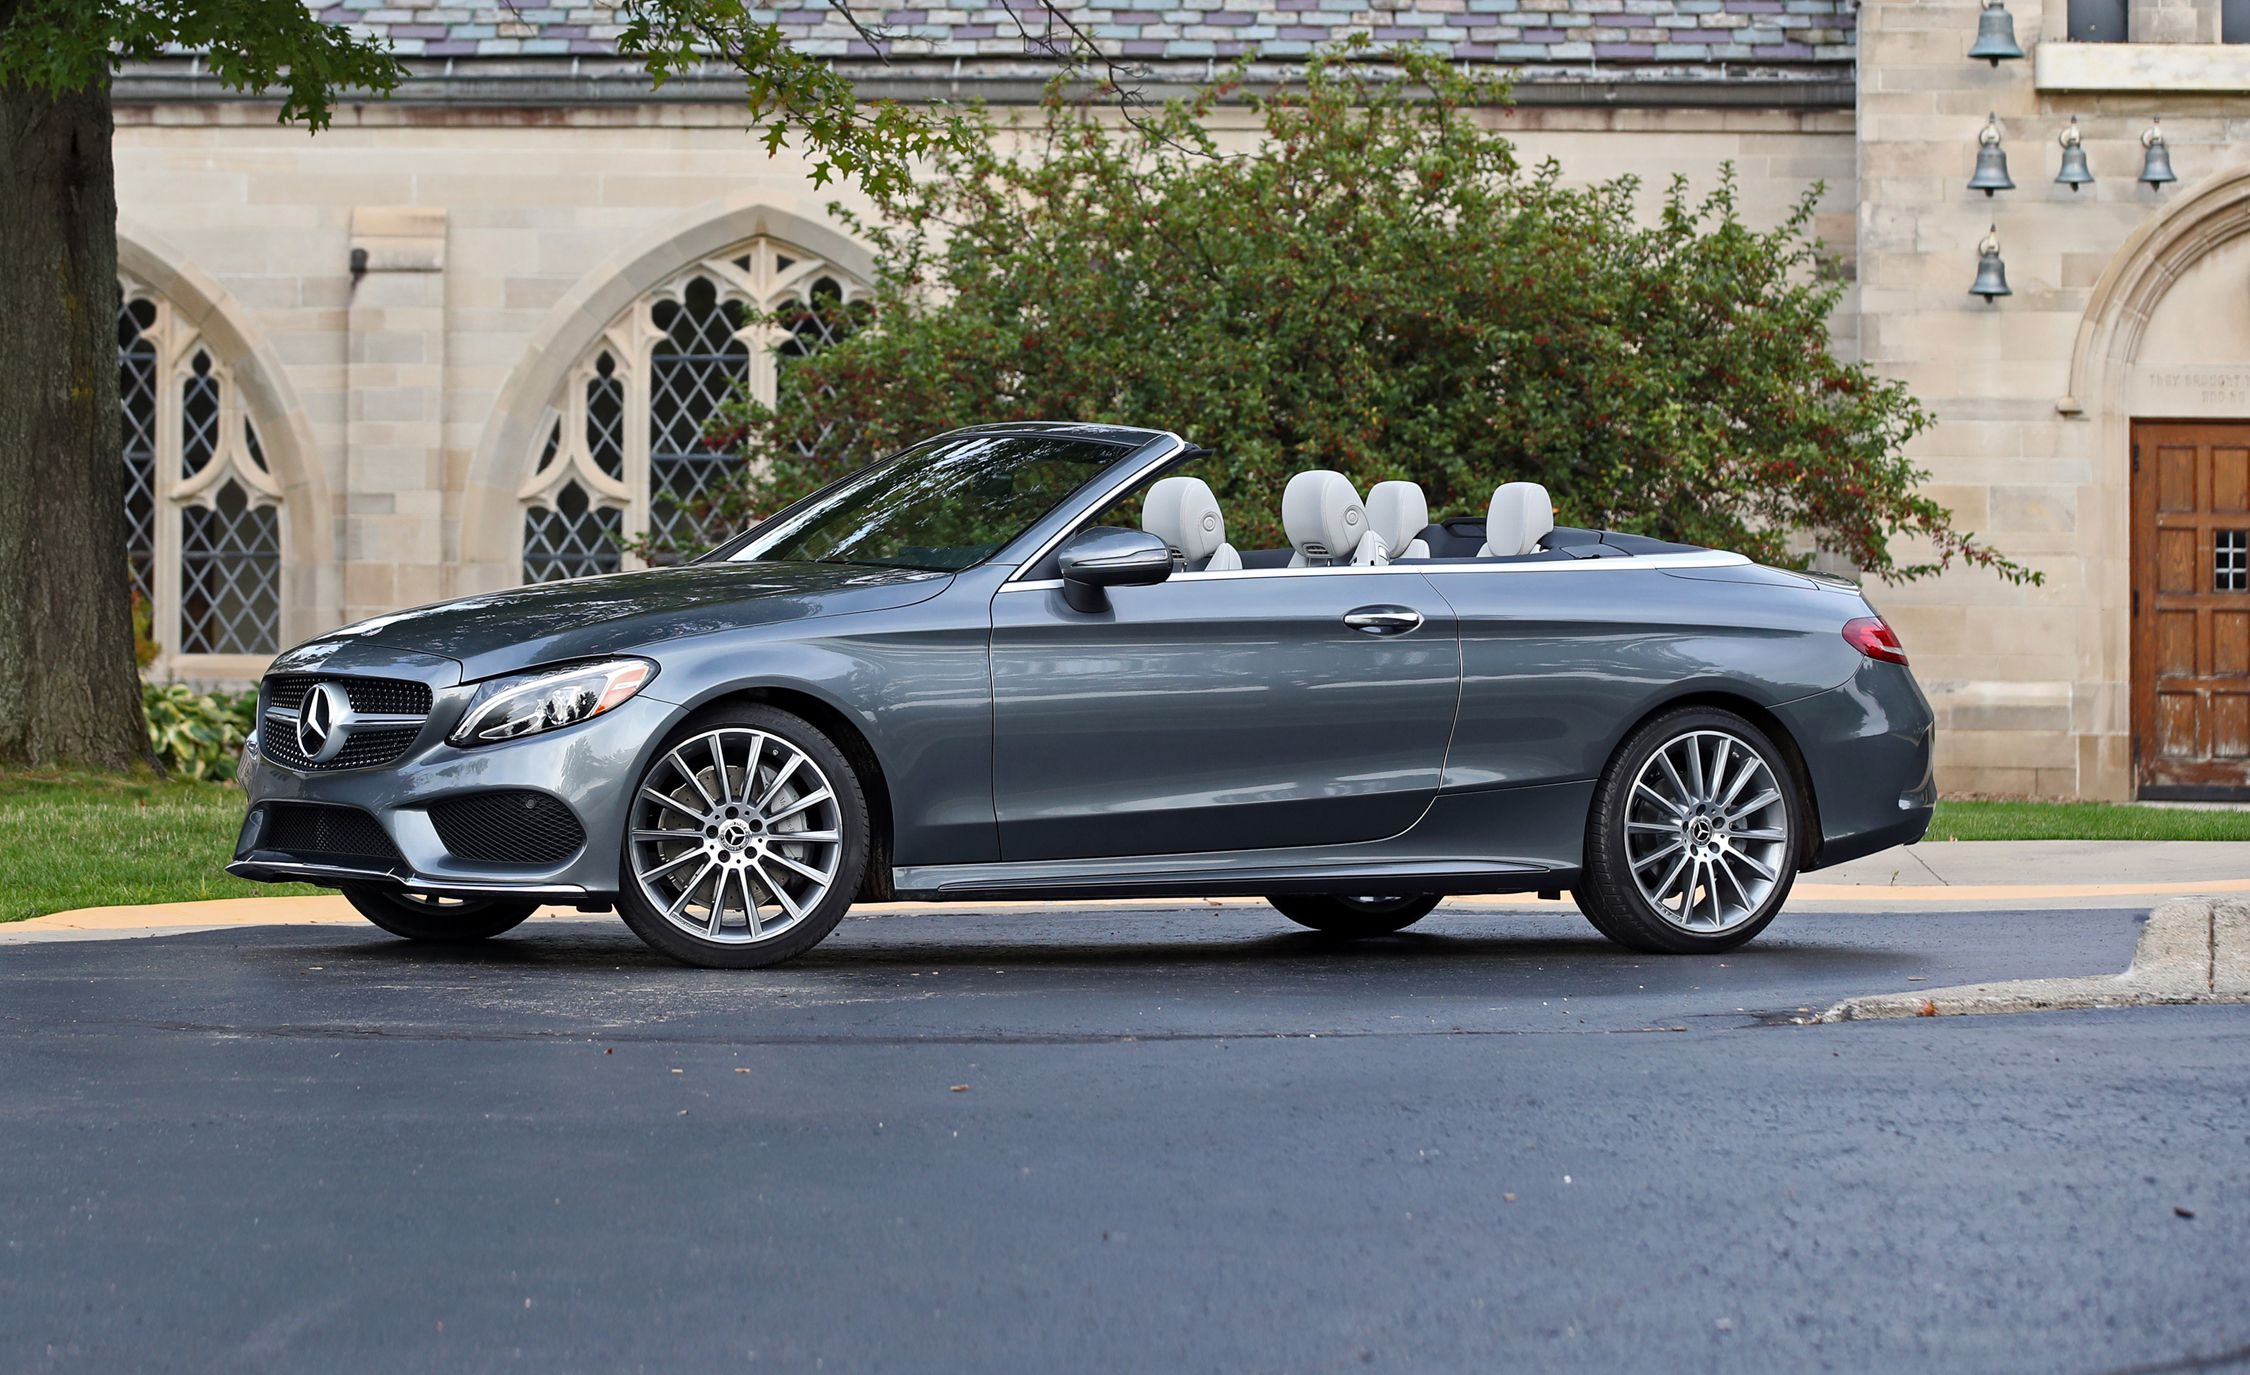 2018 Mercedes Benz C Class Coupe And Cabriolet Emercedesbenz